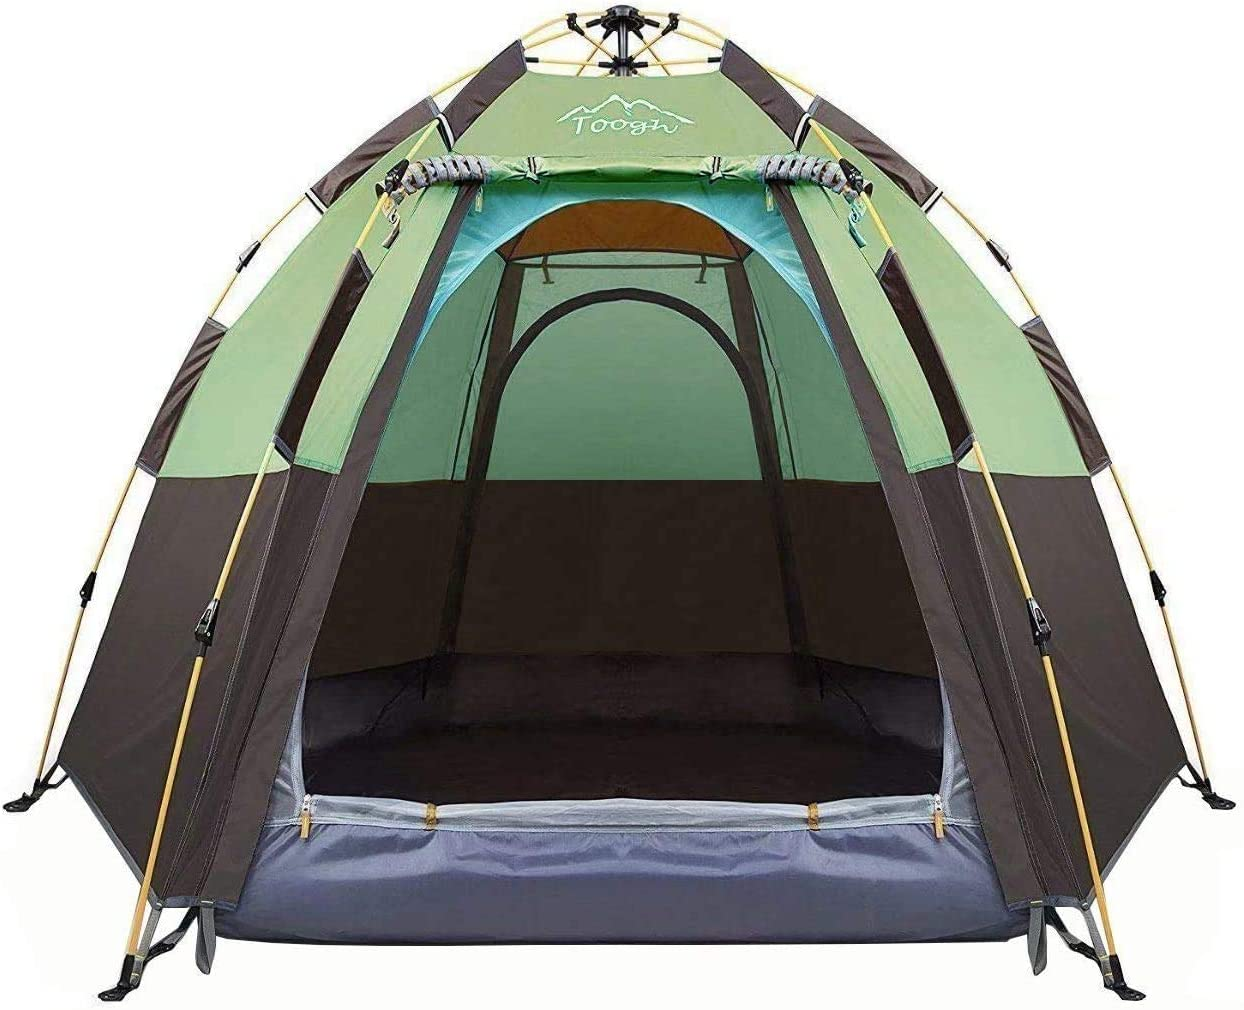 TOOGH 3-4 PERSON CAMPING TENT| POP UP CAMPING TENT